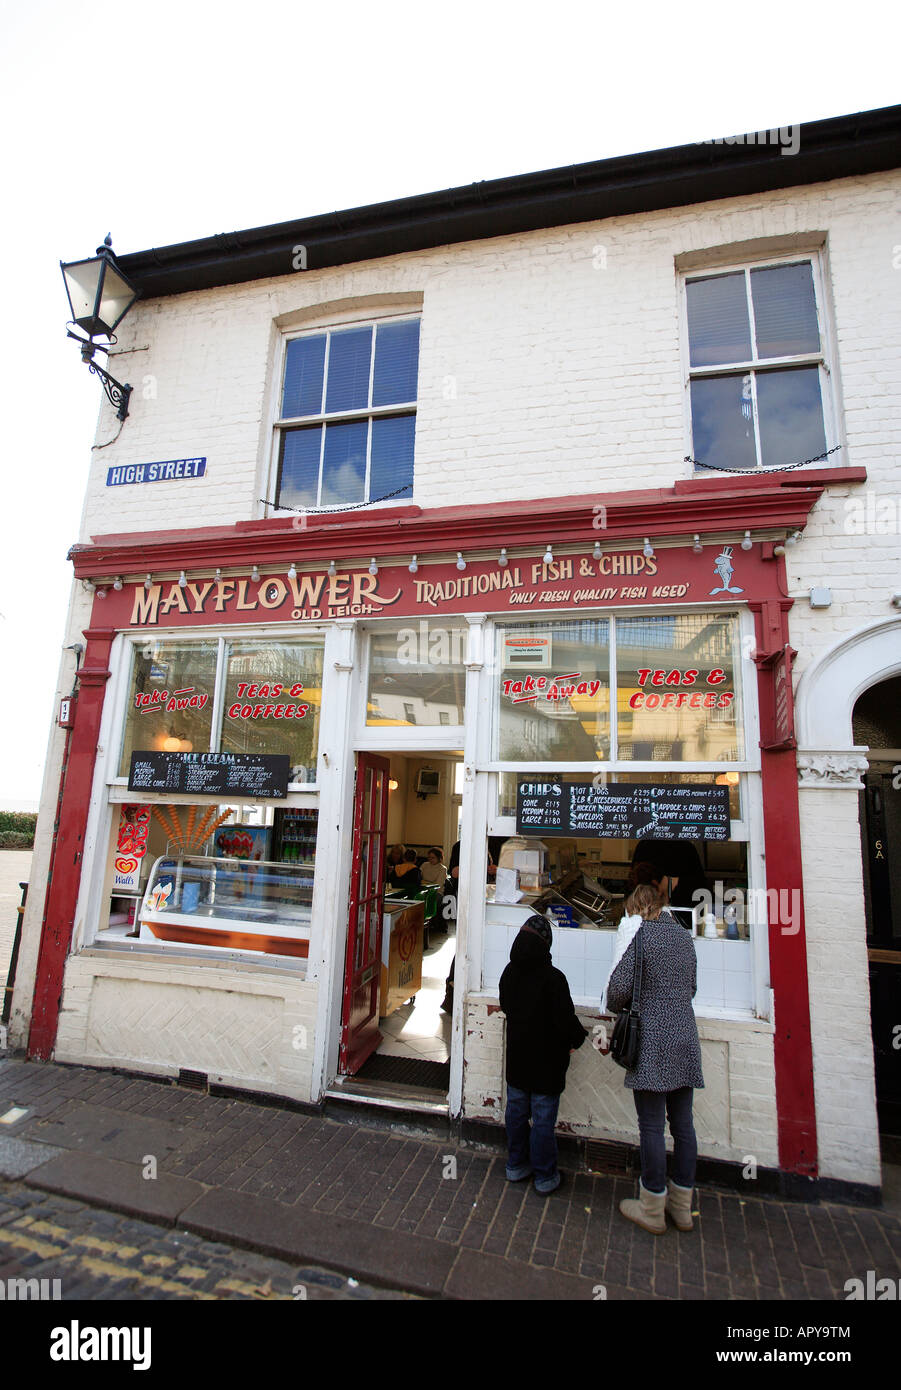 united kingdom essex old leigh on sea the mayflower fish and chip shop Stock Photo